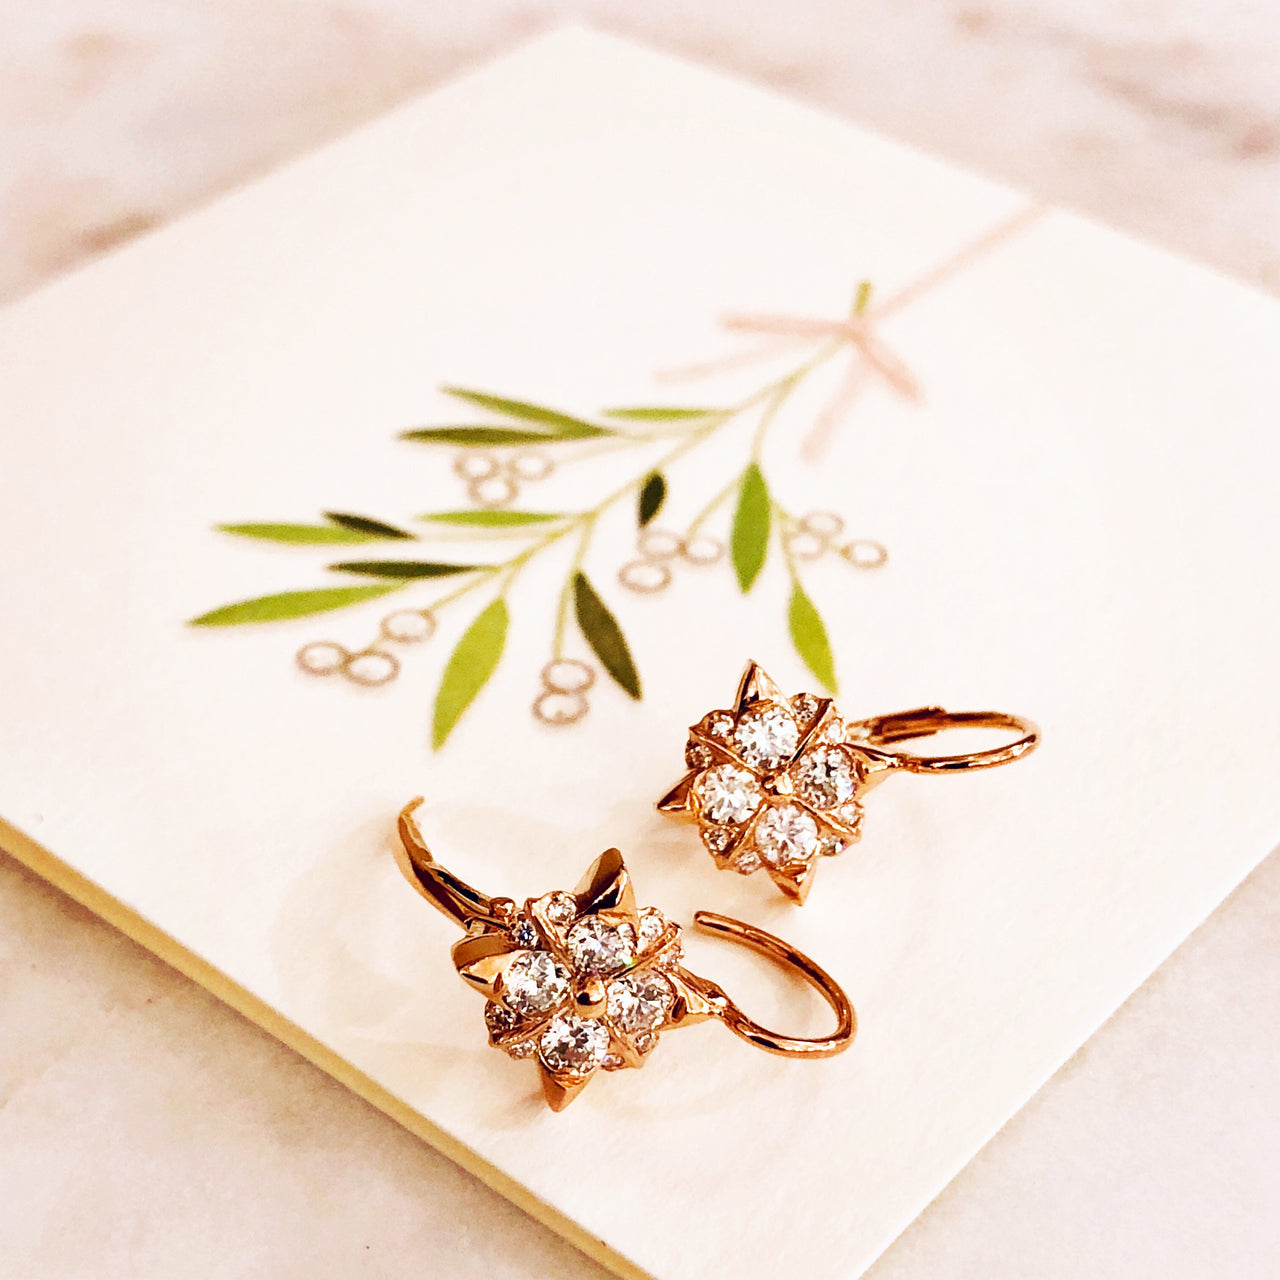 14K Rose Gold Diamond Earrings.